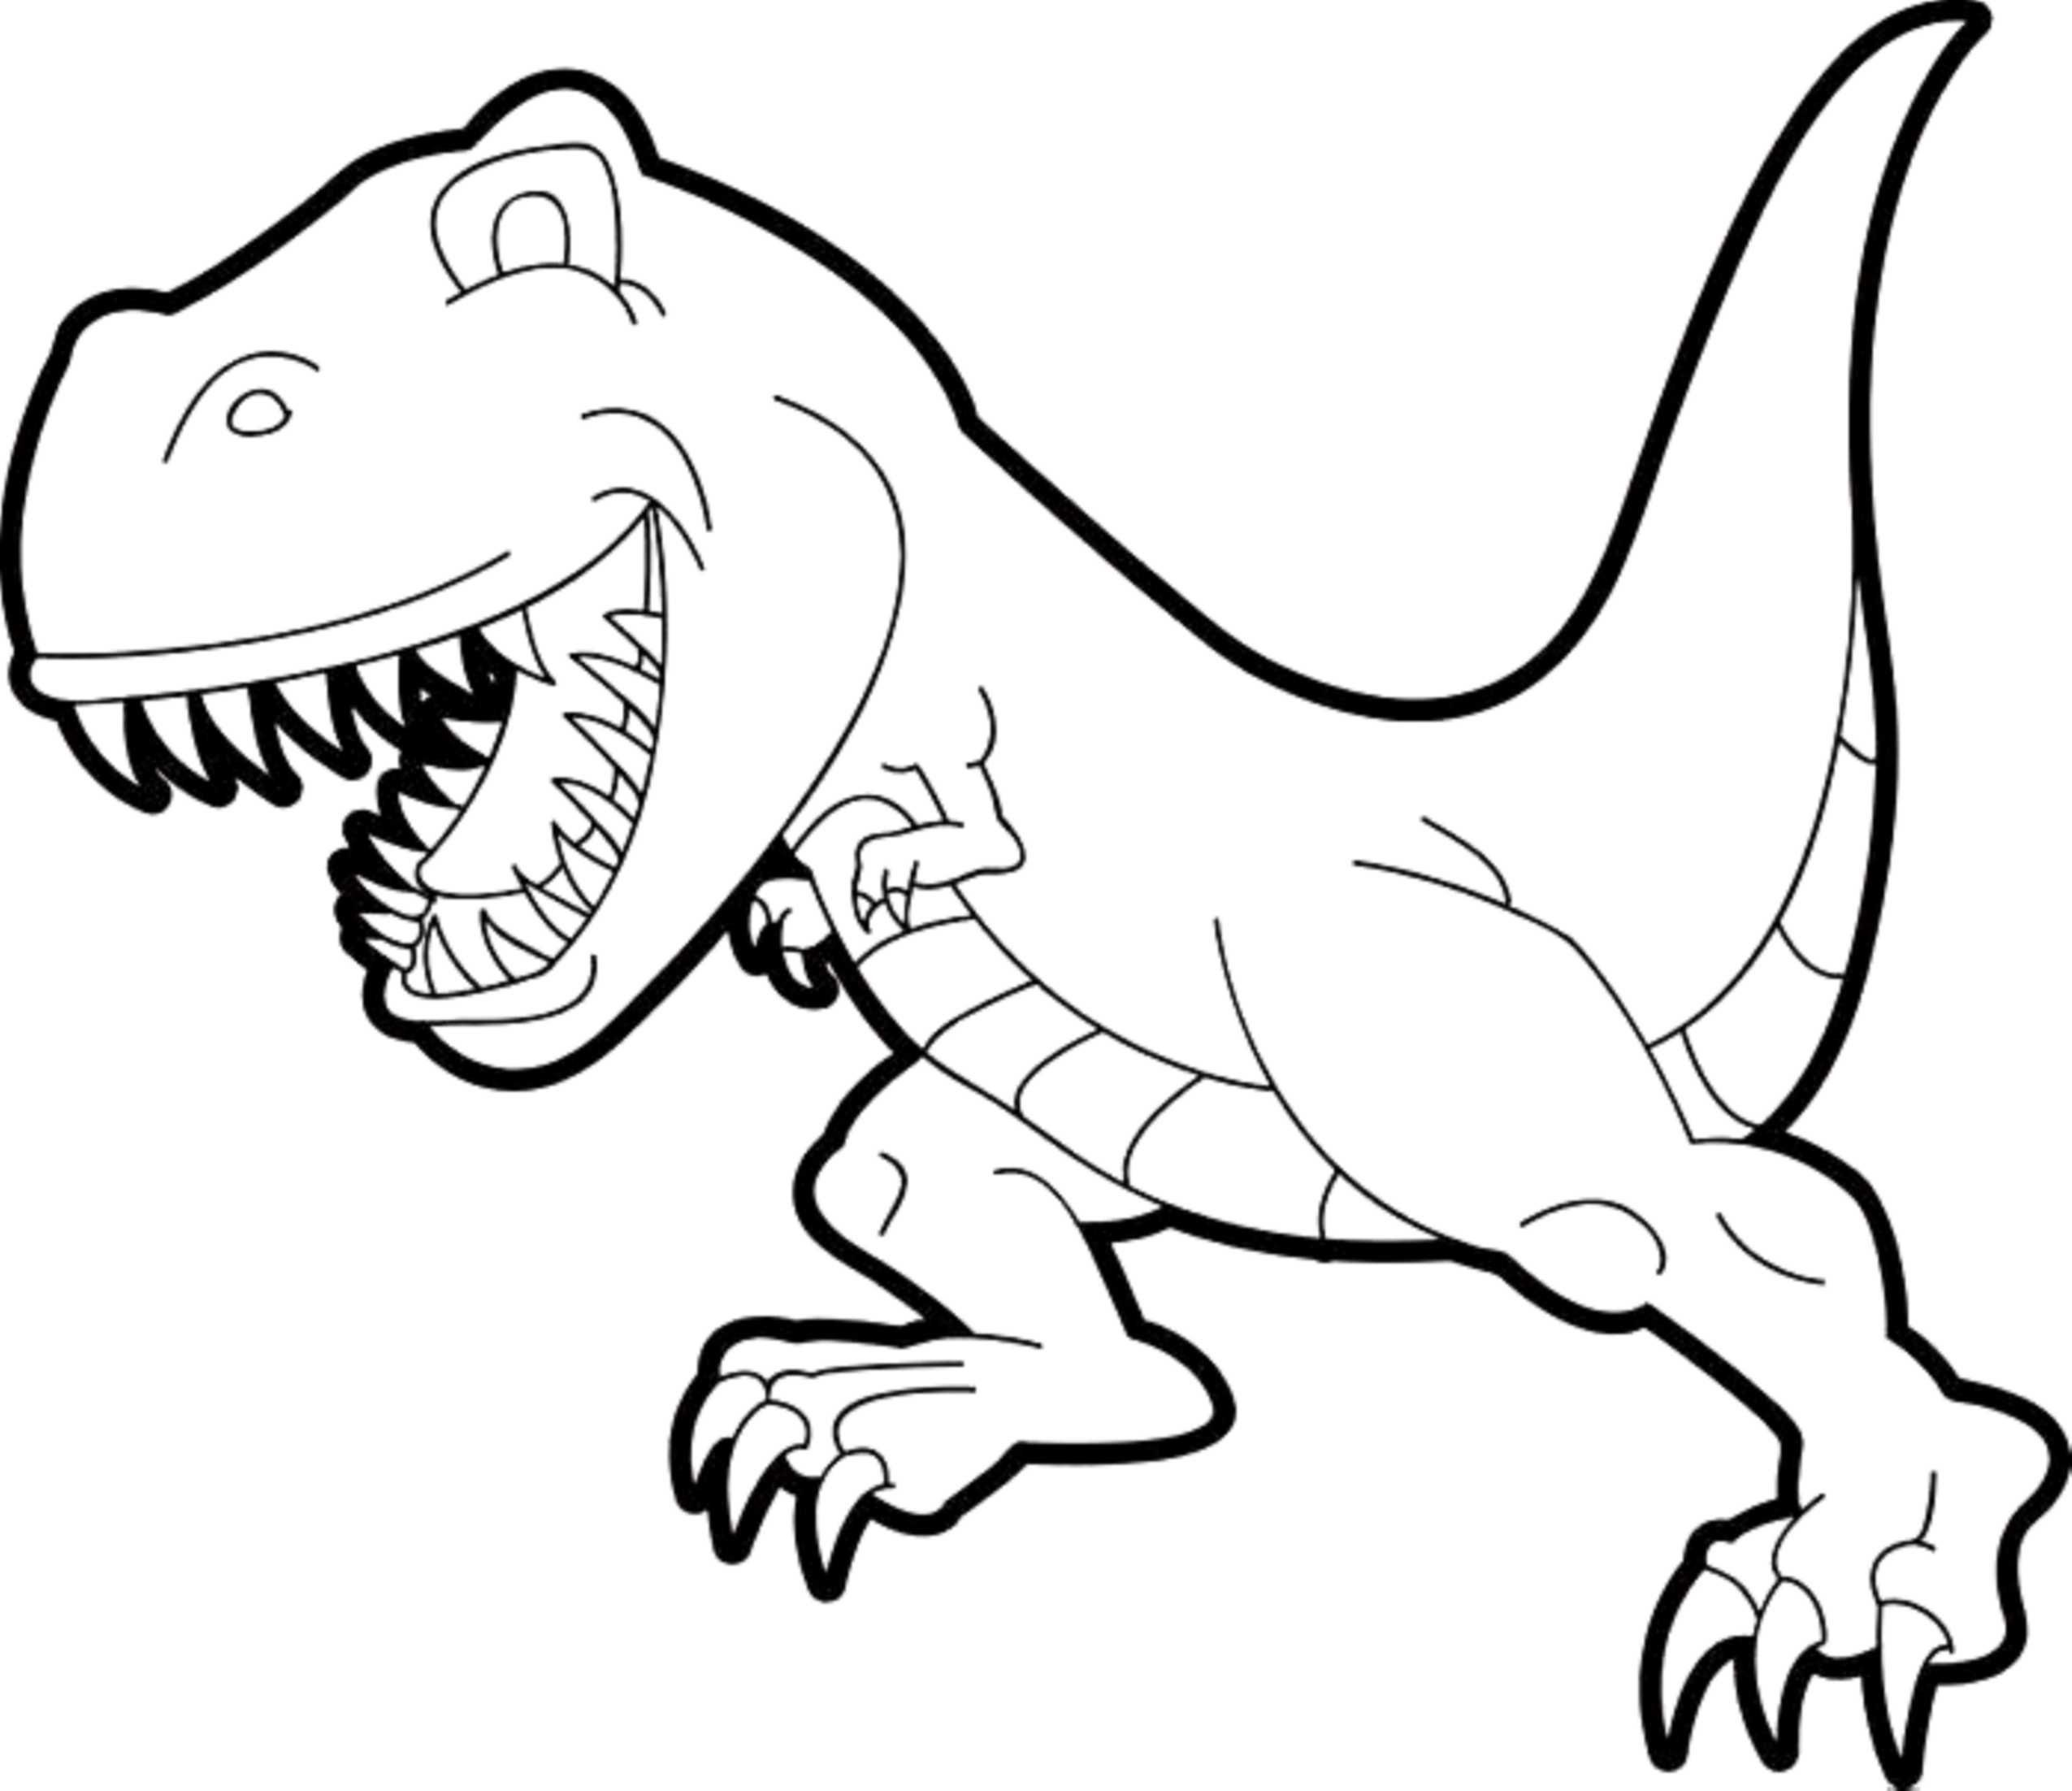 Parasaurolophus Coloring Page Dinosaur Coloring Pages Coloring